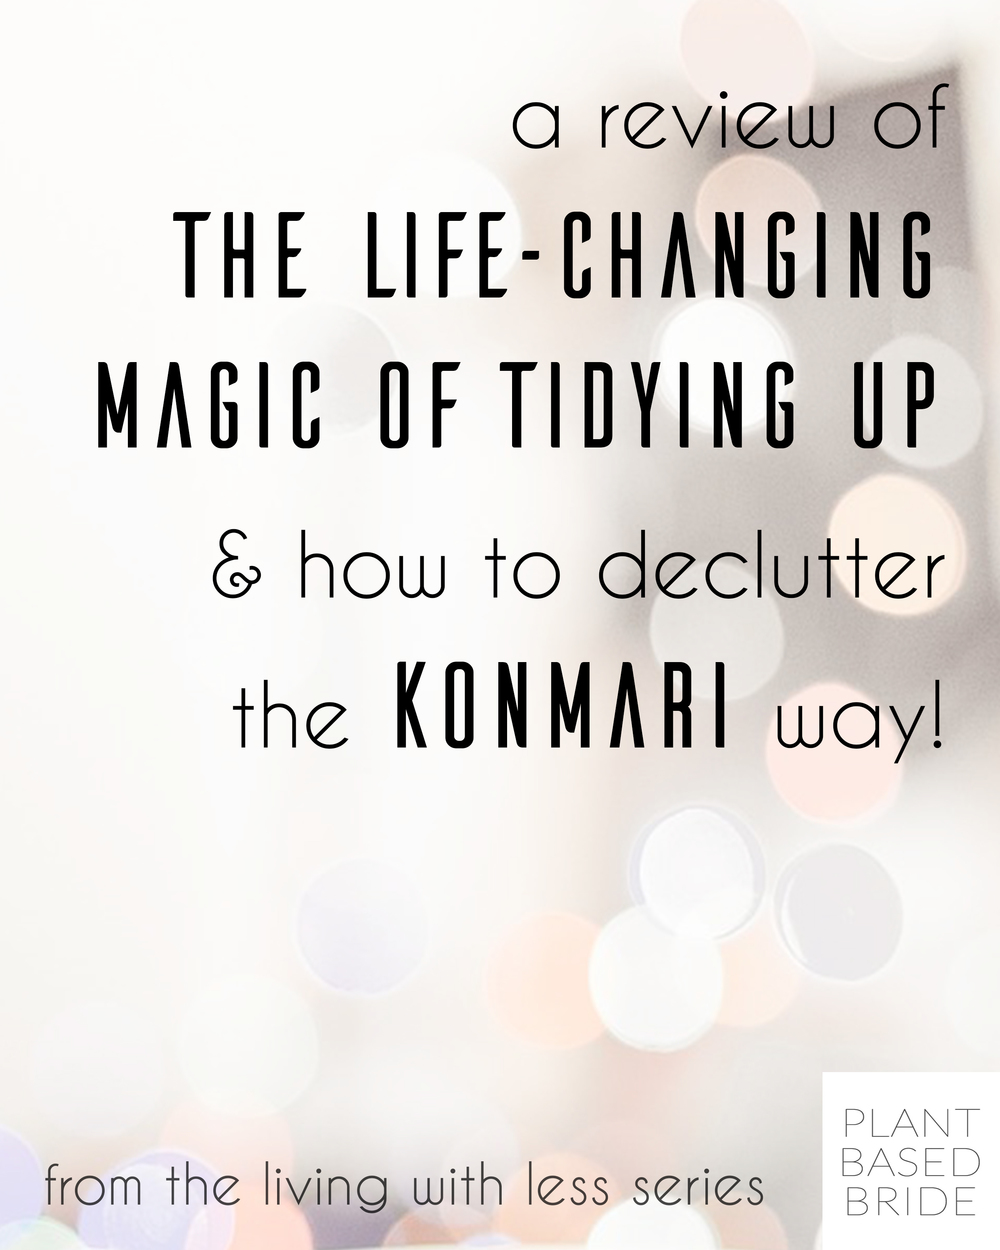 An awesome introduction to the KonMari method for anyone thinking of buying The Life-Changing Magic of Tidying Up by Marie Kondo!  Part of the Living with Less series about minimalism on plantbasedbride.com!